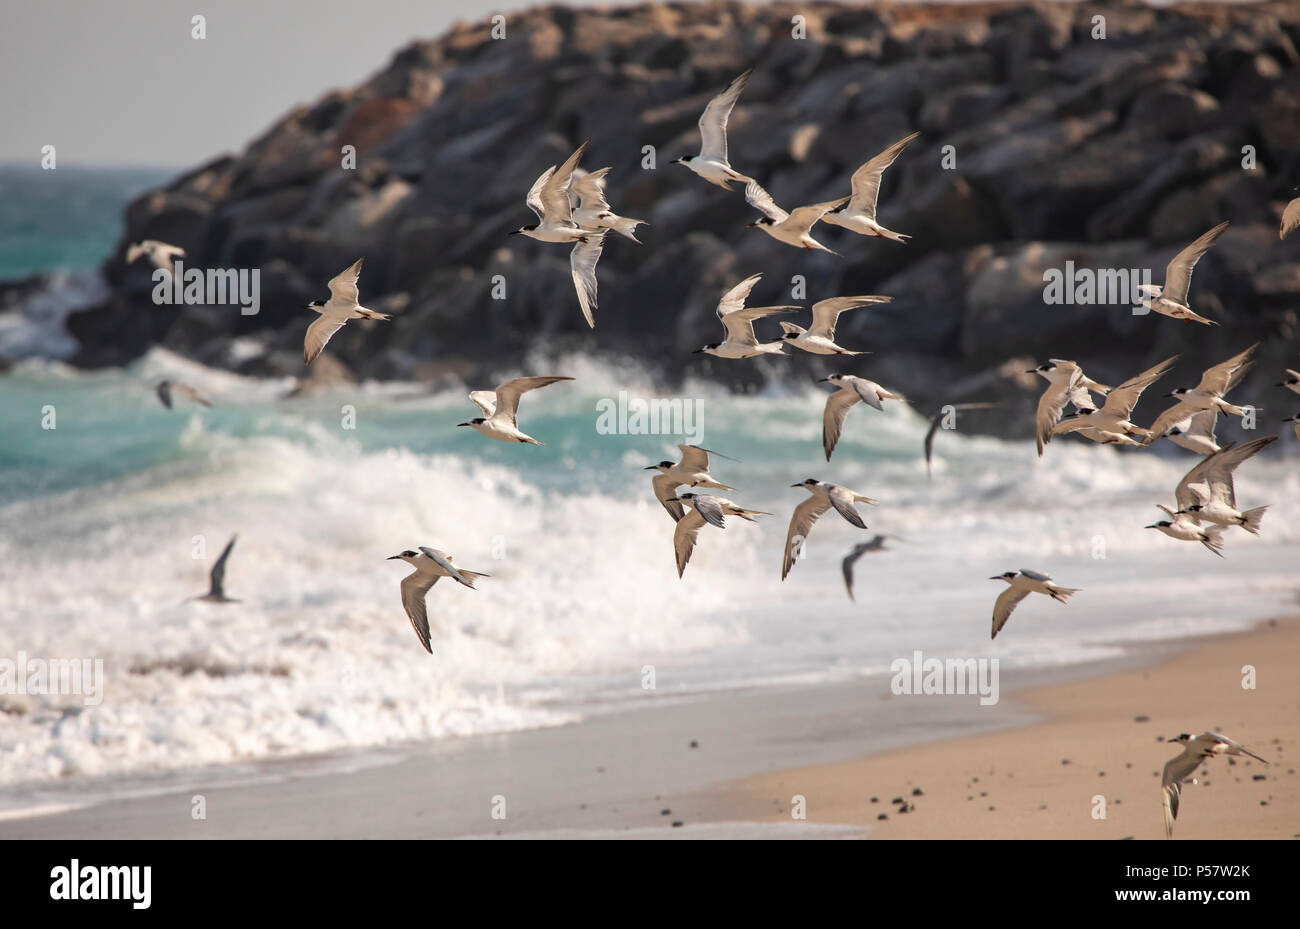 seagulls and cormorant birds sharing a beach of Musandam in Oman, close to their nesting grounds - Stock Image